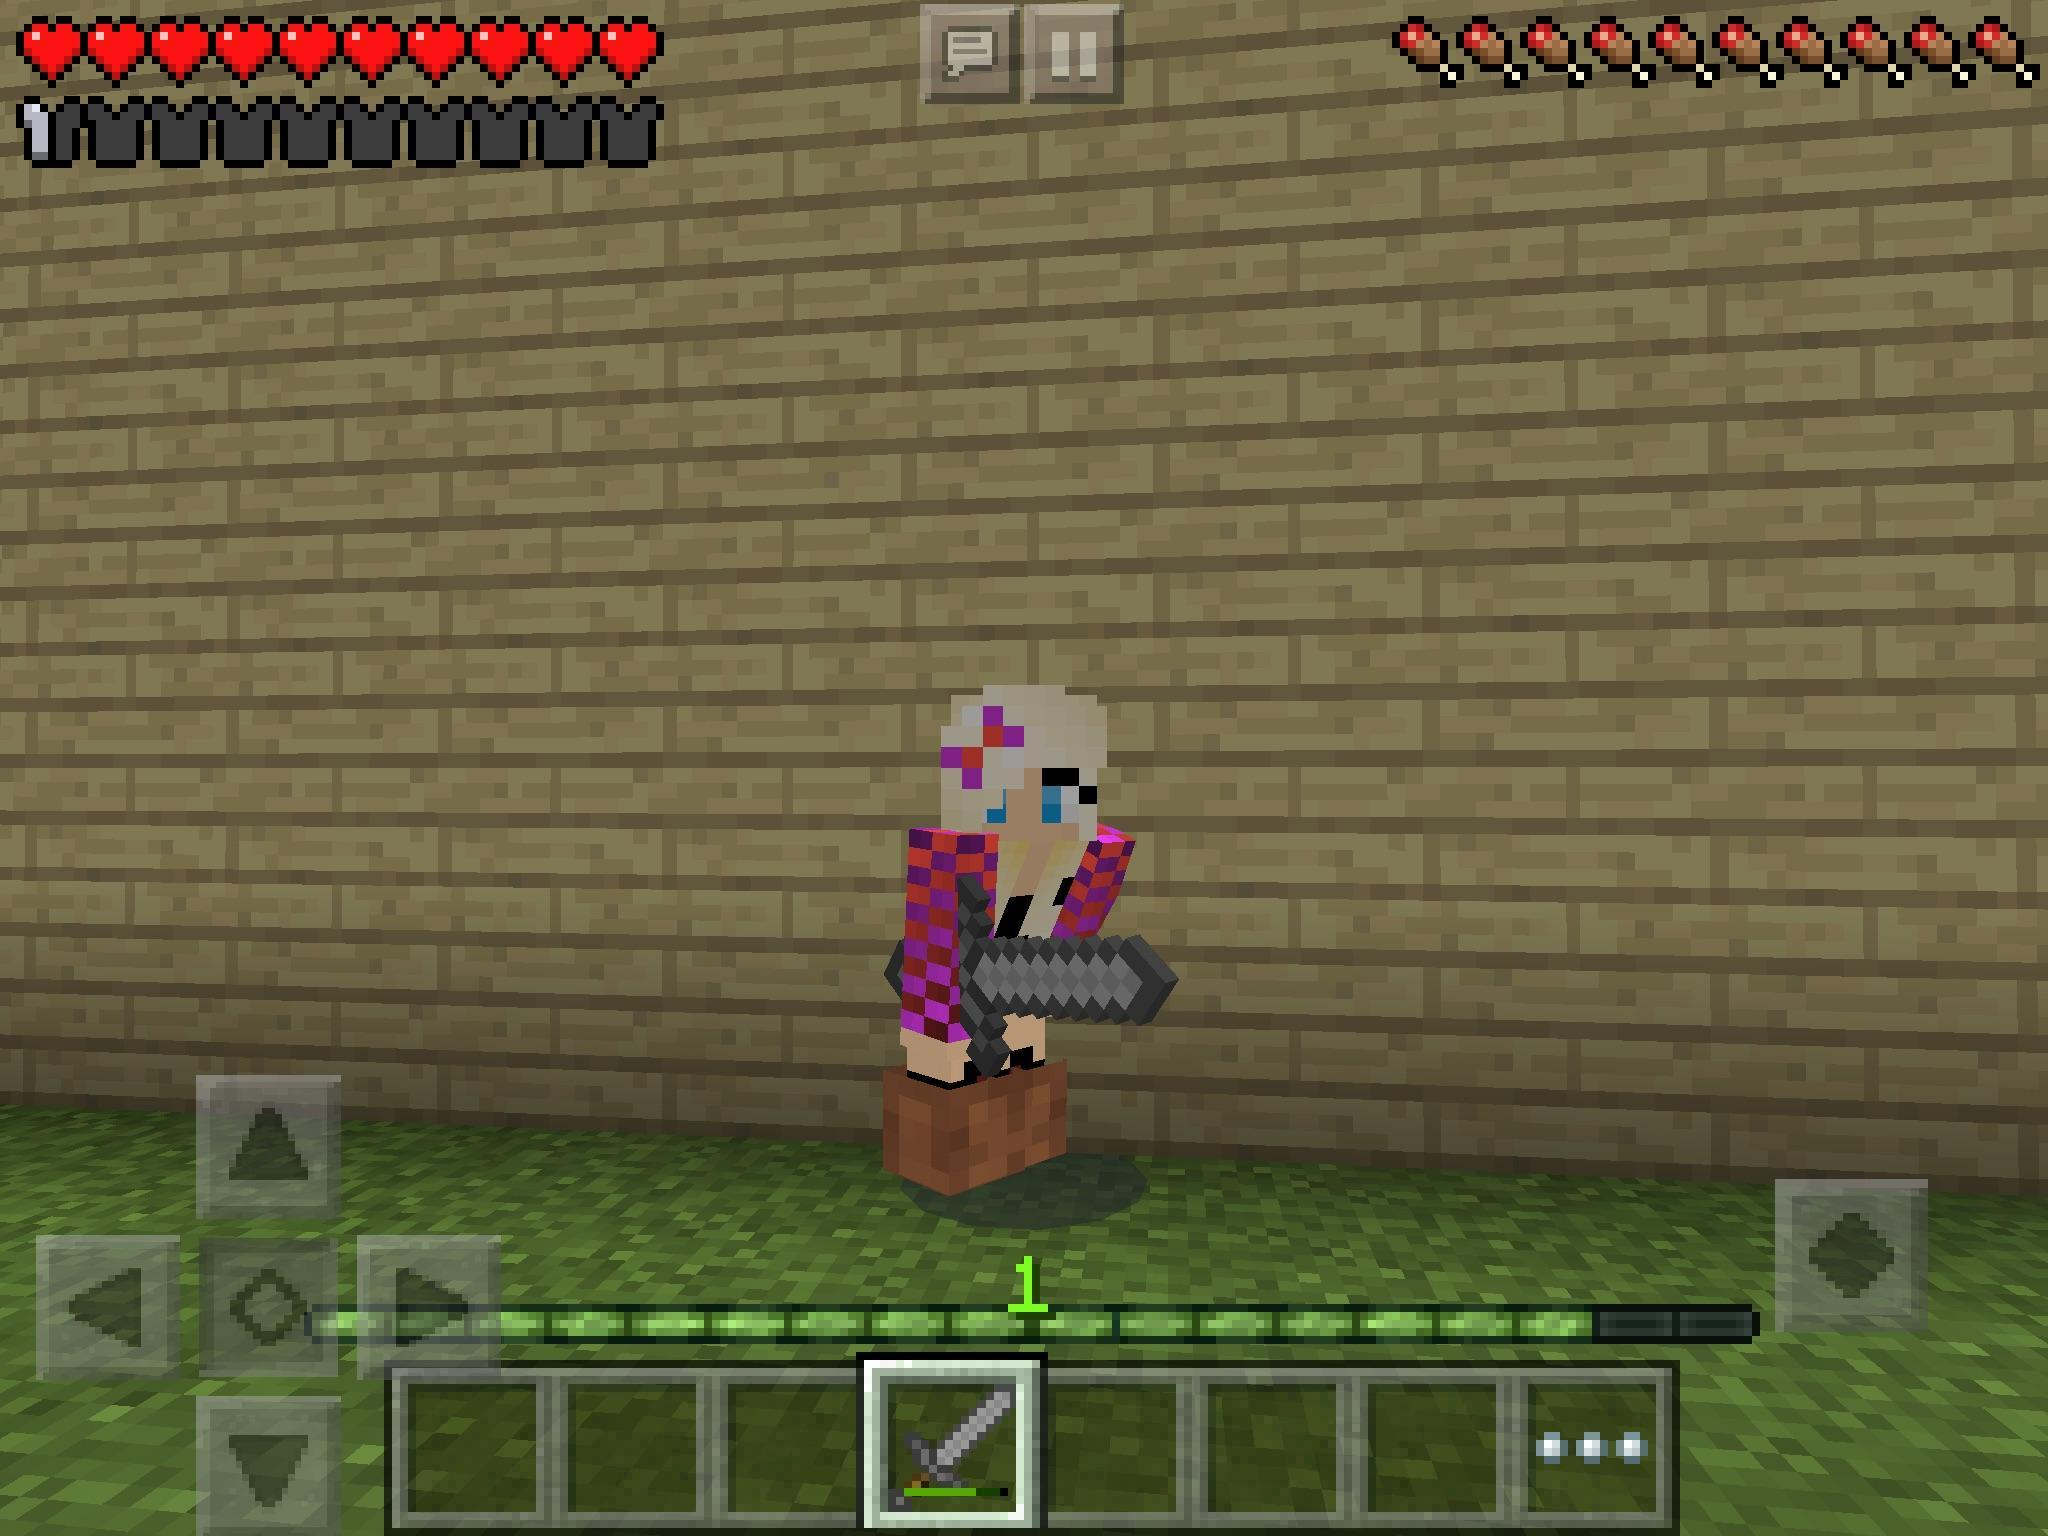 Minecraft me! (Normal)